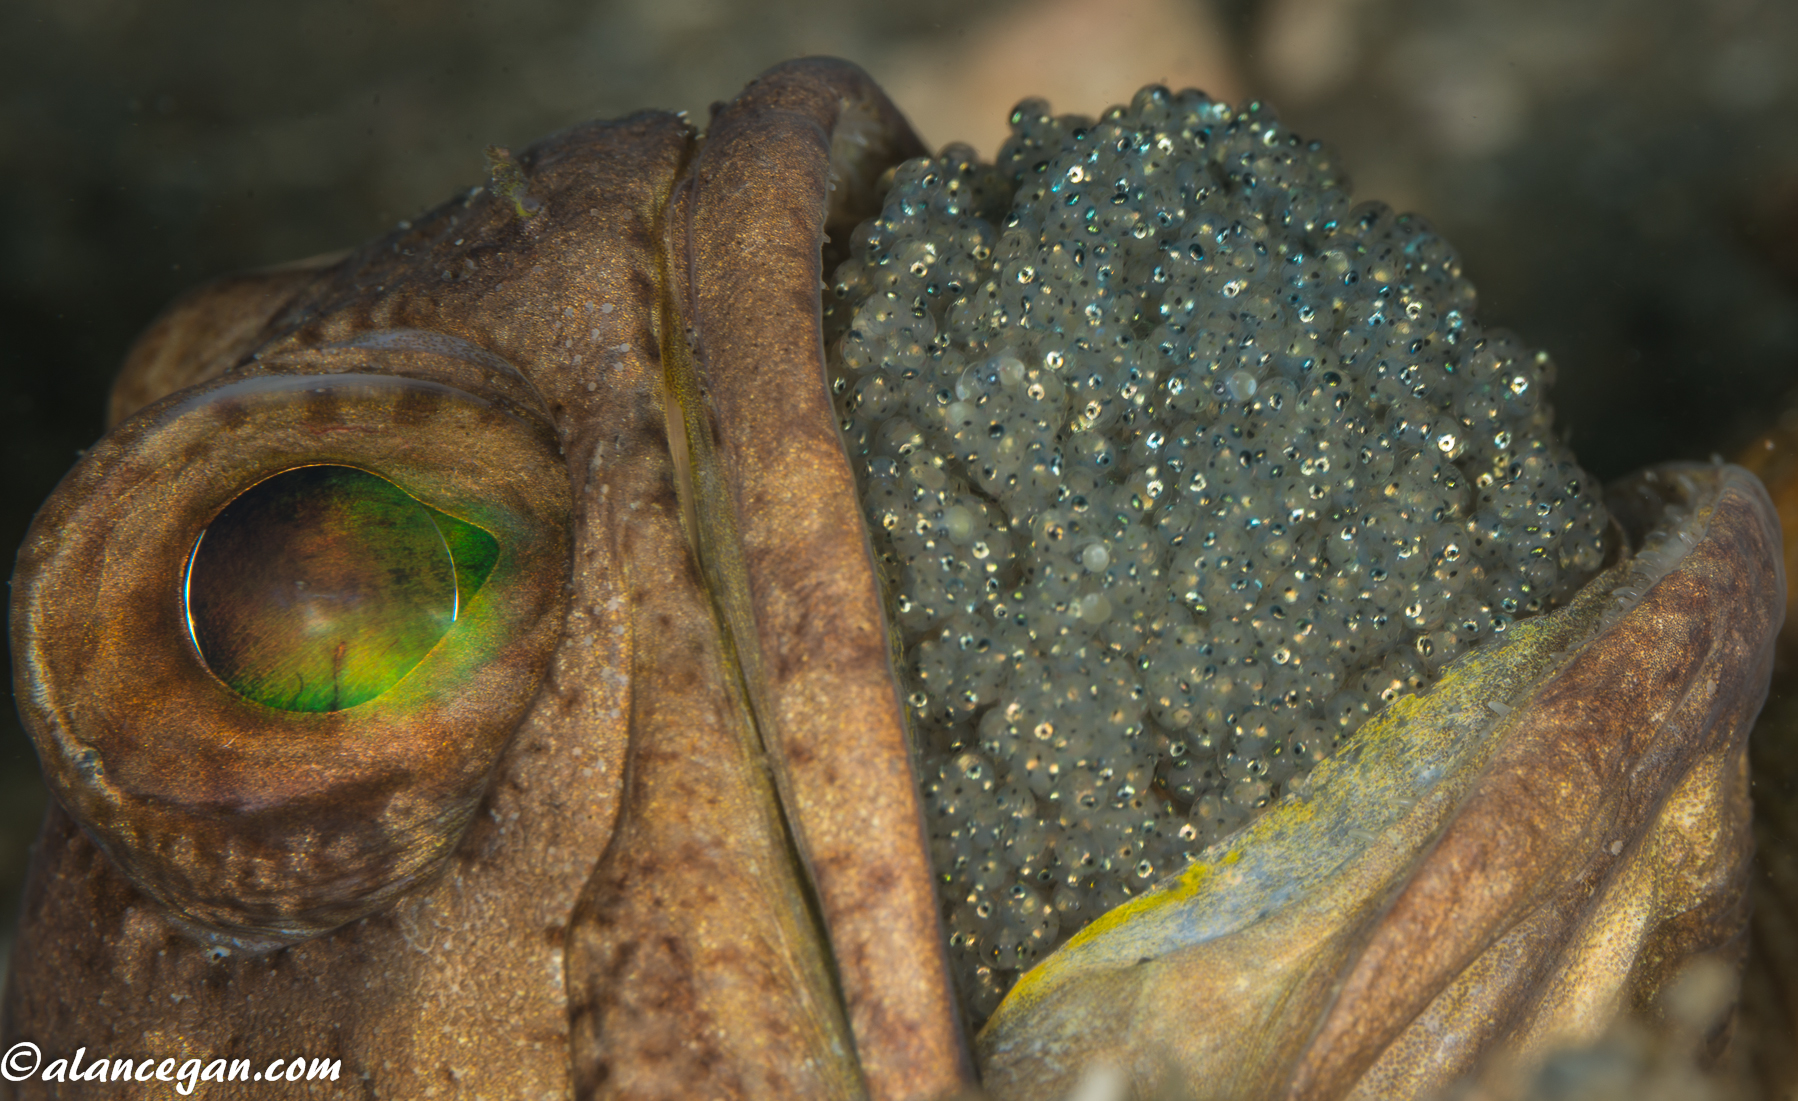 Underwater of a Male Banded Jawfish incubating eggs in his mouth